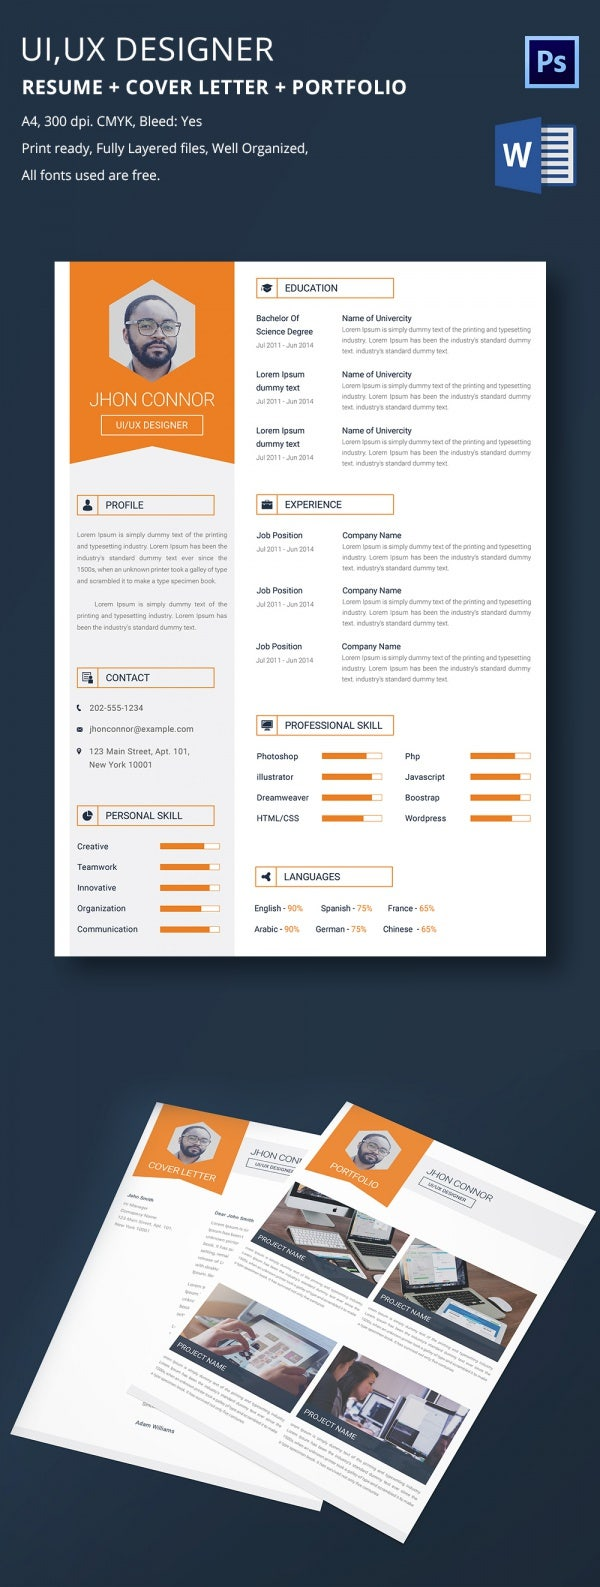 graphic designer resume cover letter portfolio for a smart ui ux designer resume awaits you here layered in a state of the art theme throughout it starts your photo at top left followed by